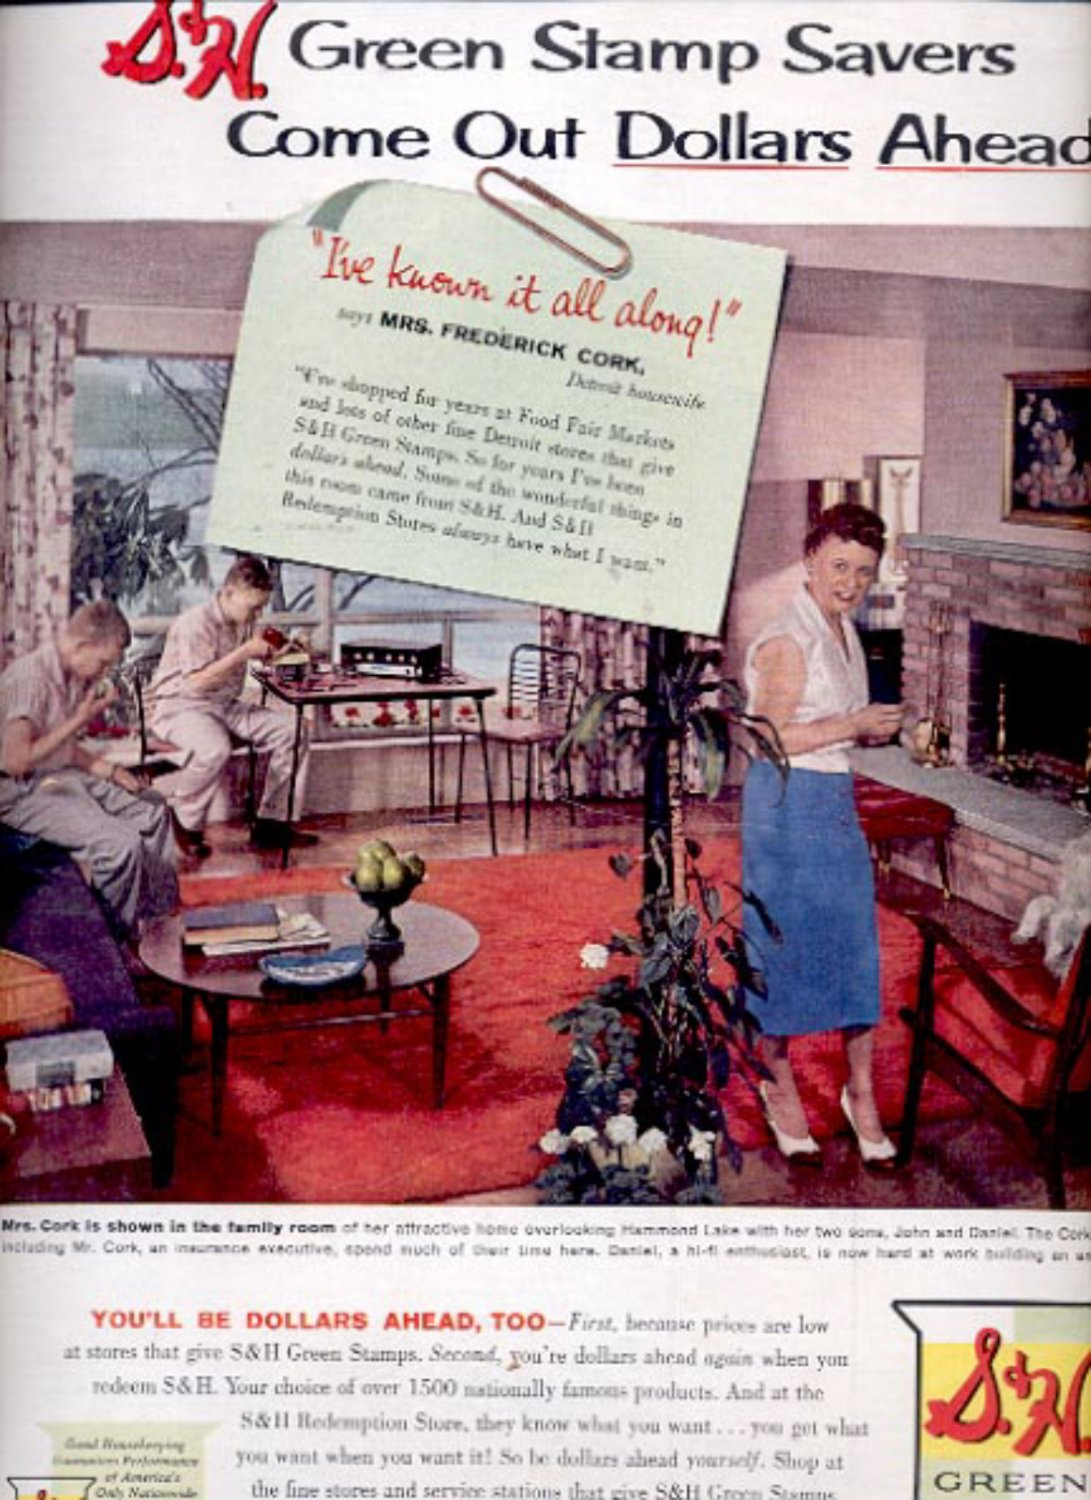 1959  S & H Green Stamps  ad (#5548)